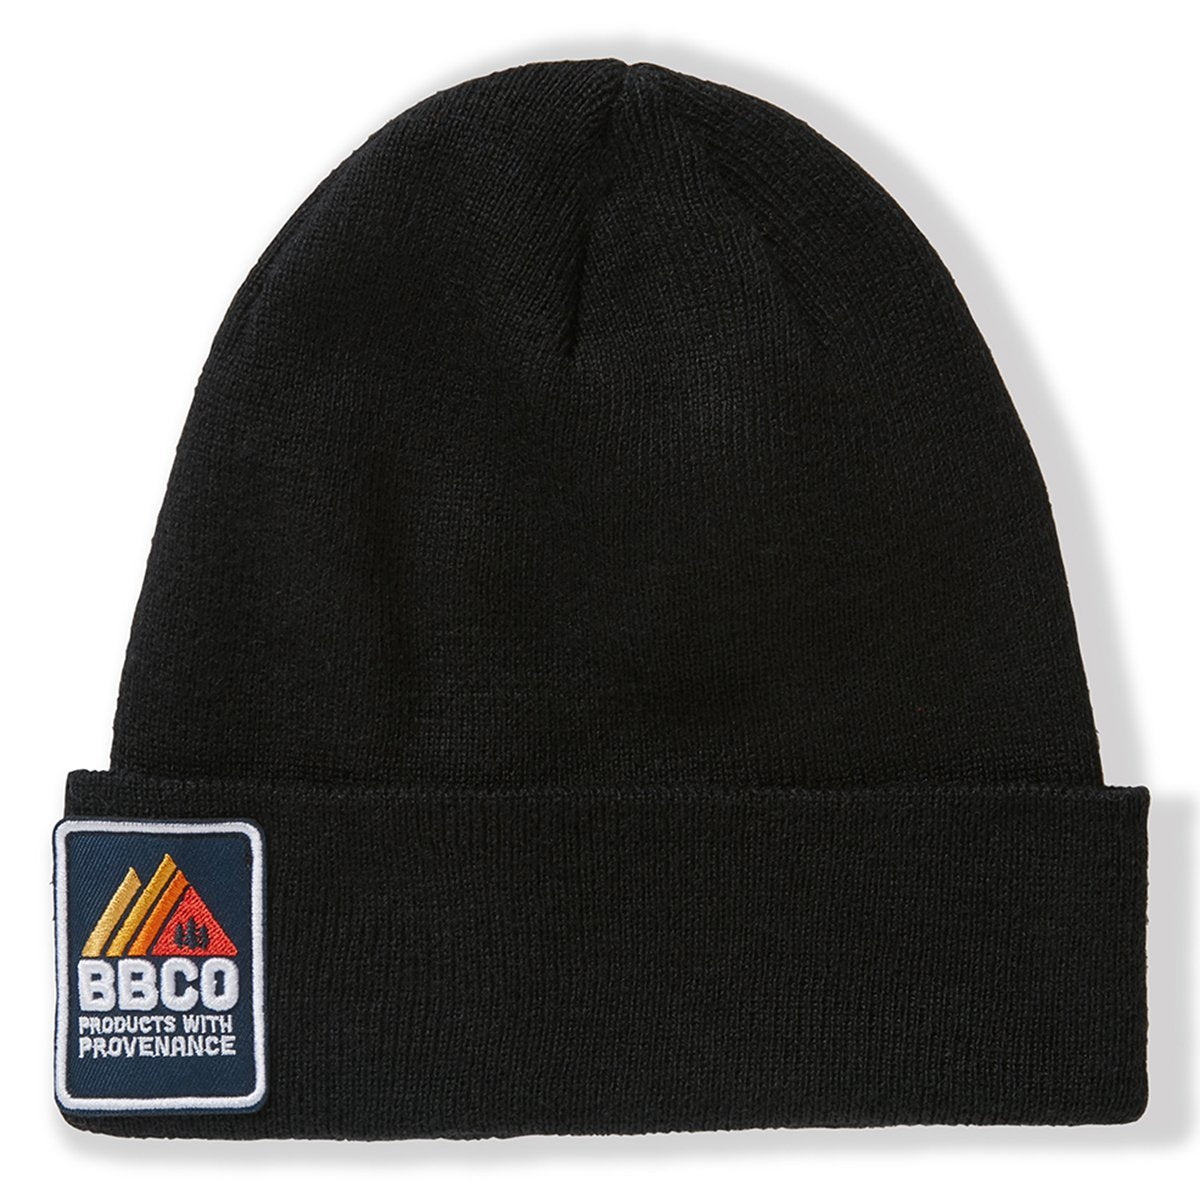 BBCOPOL001, BBCo, Essentials Beanie, Black, Fisherman Beanie | Knitted Hat